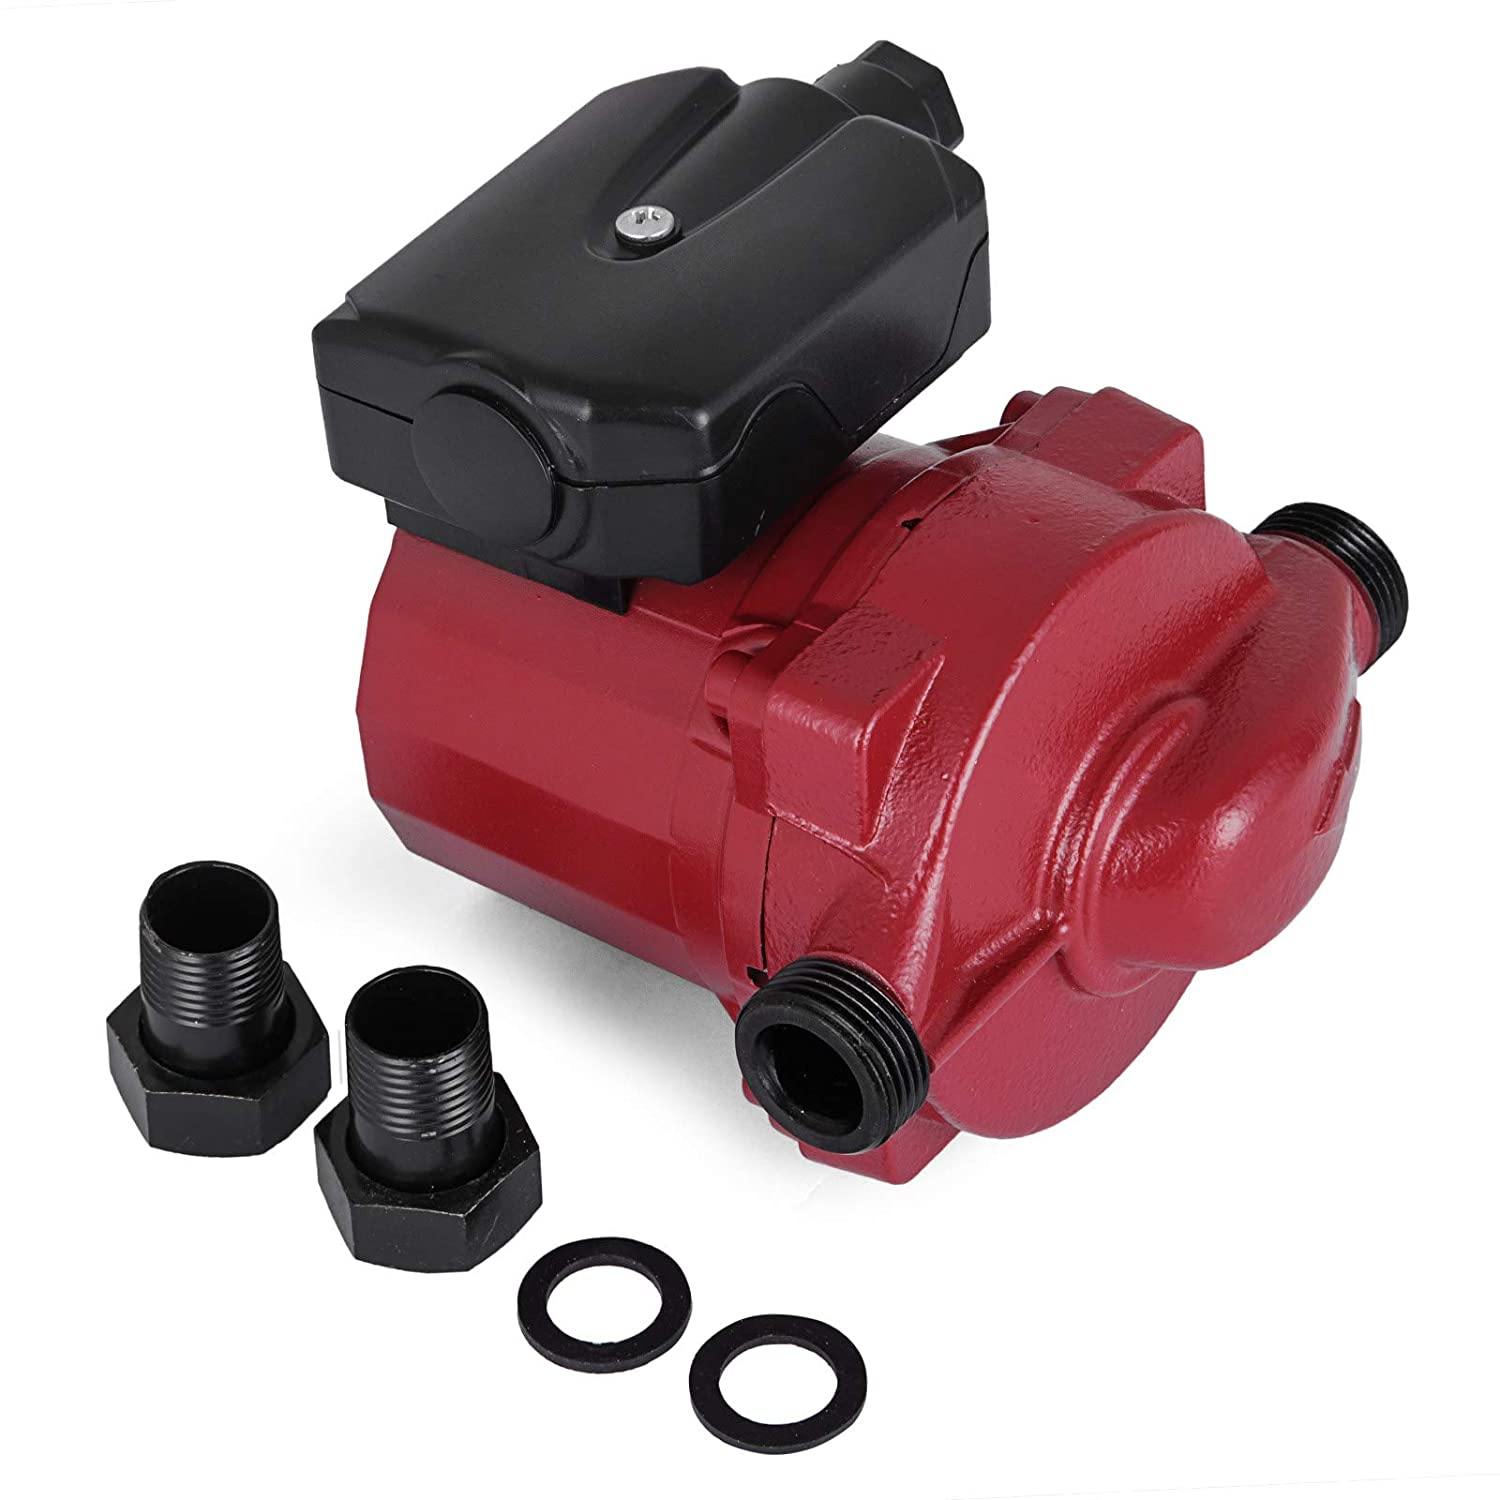 """Happybuy 3/4"""" 110V Hot Water Circulation Pump 9.5 GPM 3-Speed Hot Water Circulating Pump RS15-6 Red Water Circulation Pump for Solar Heater Systems Mophorn"""